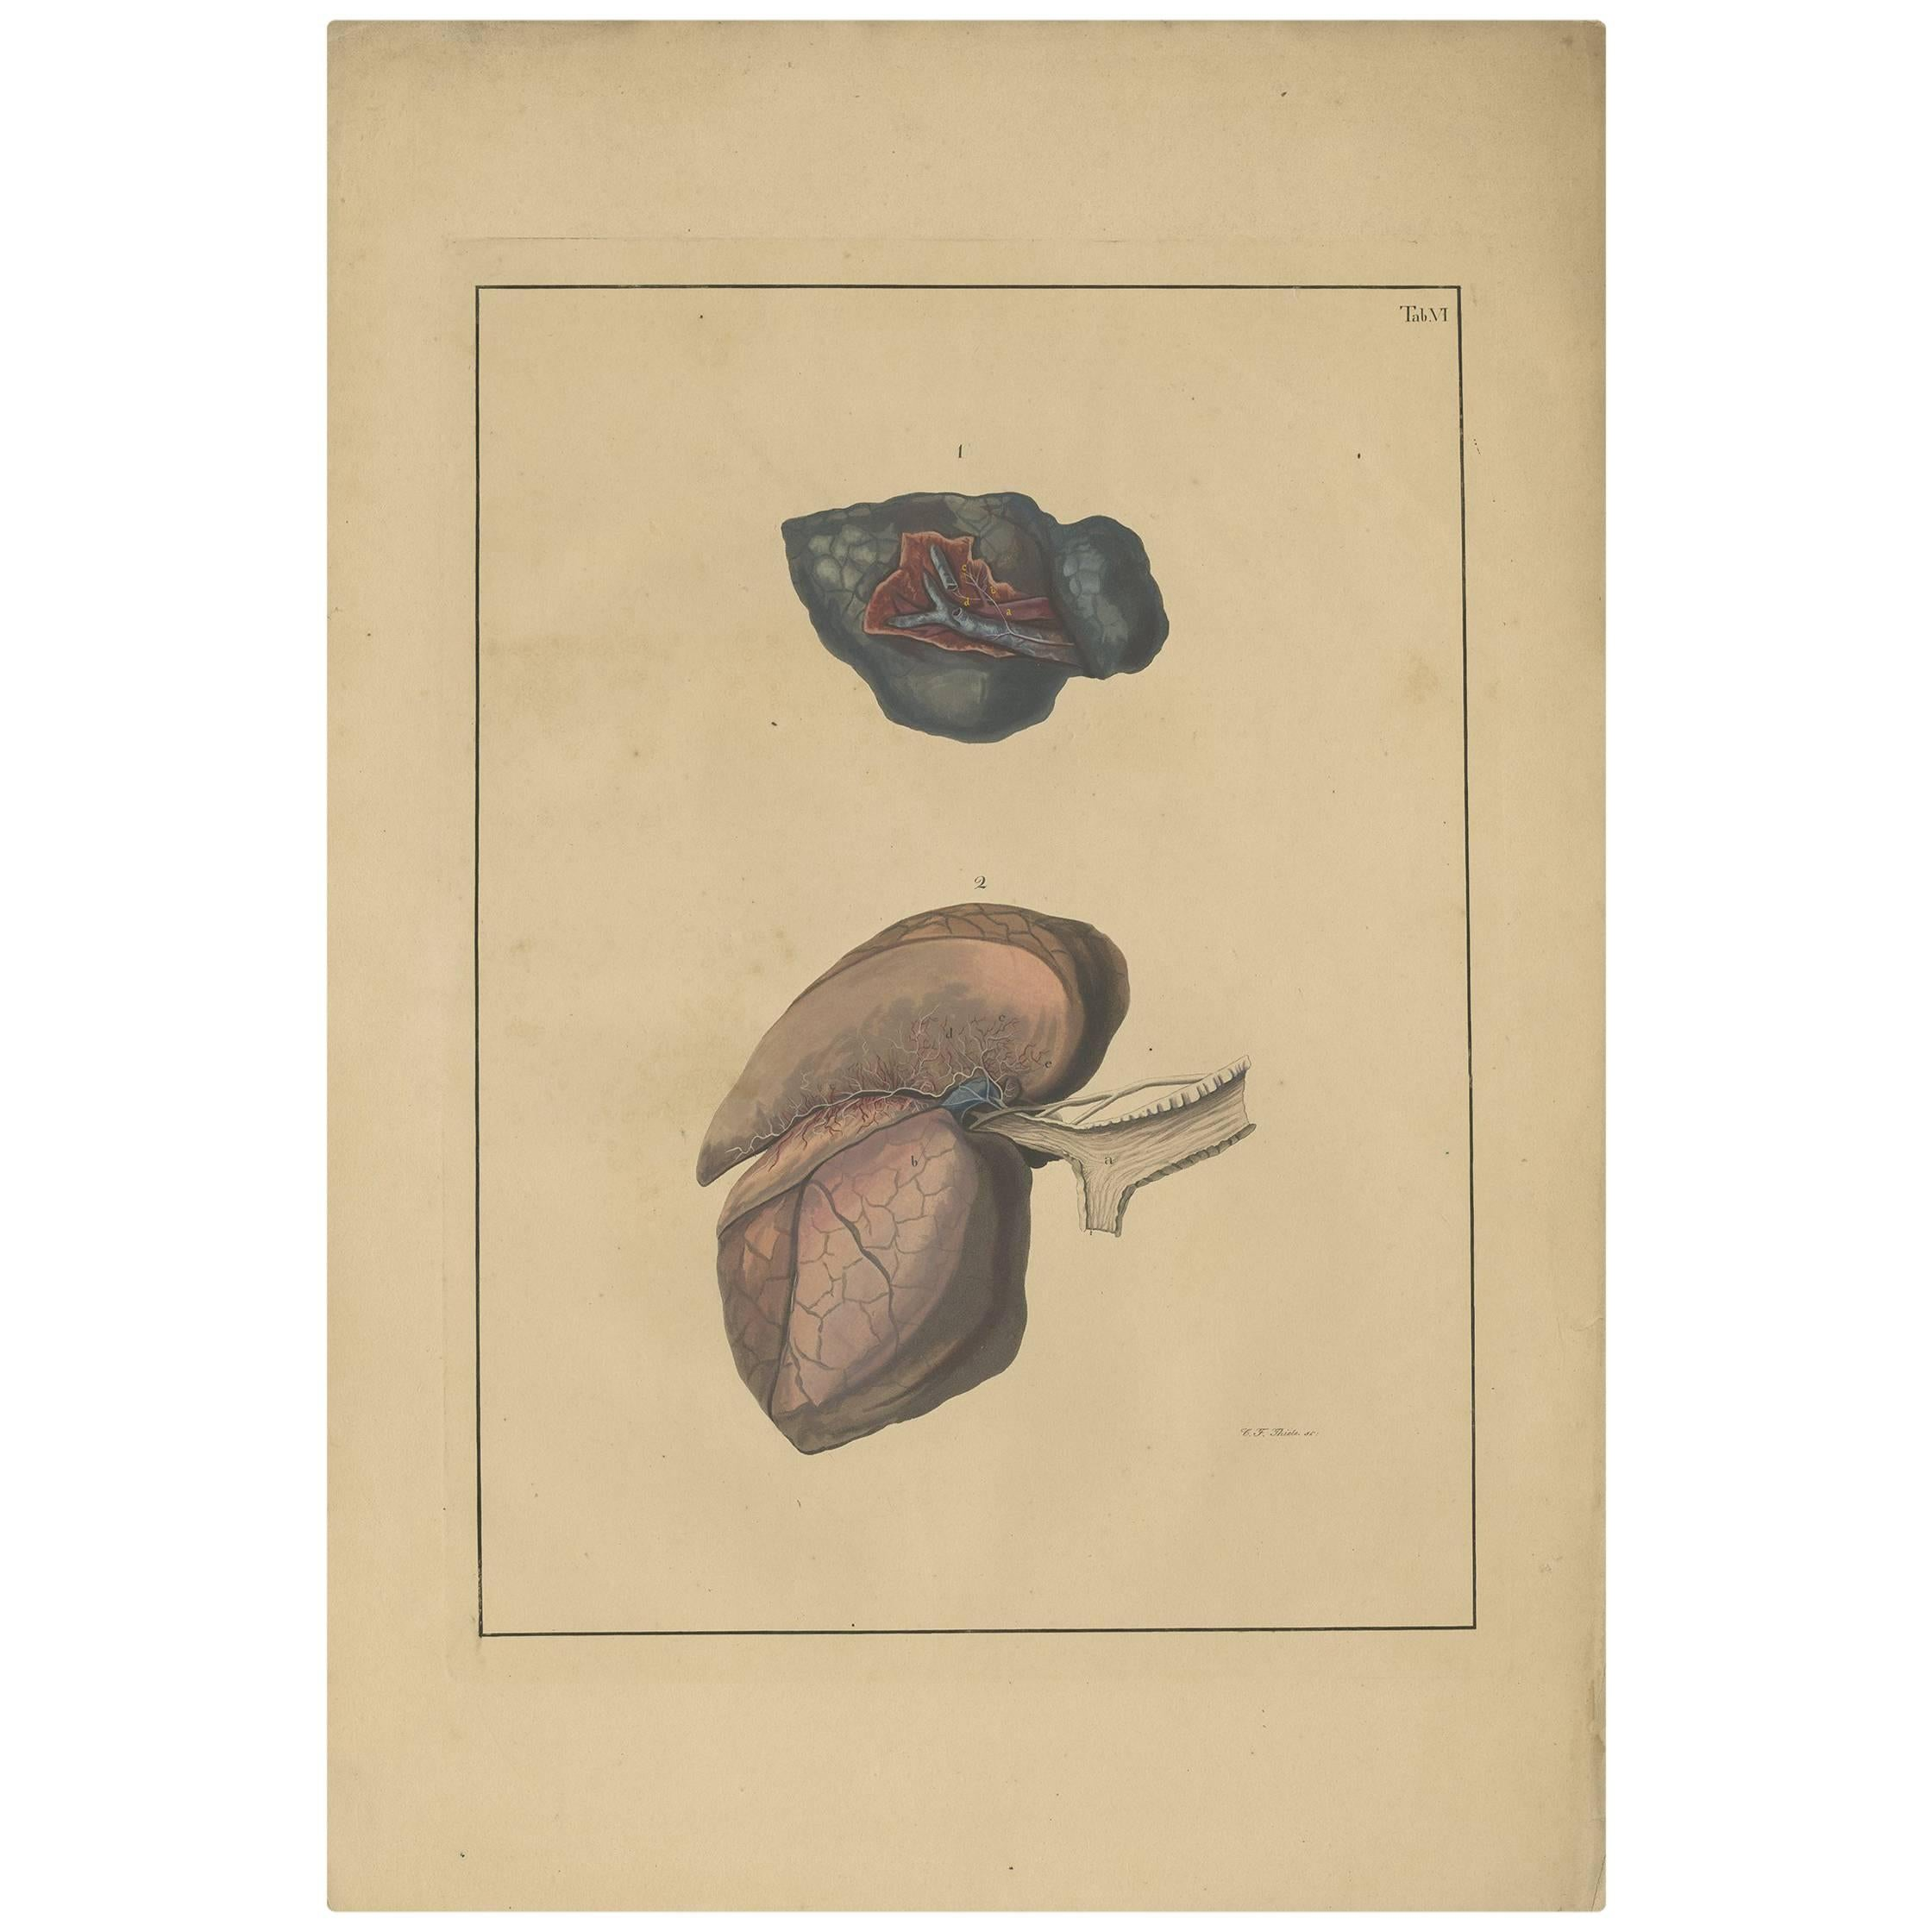 Antique Medical Print of Lungs 'Tab. 6' by F.D. Reisseisen, 1822